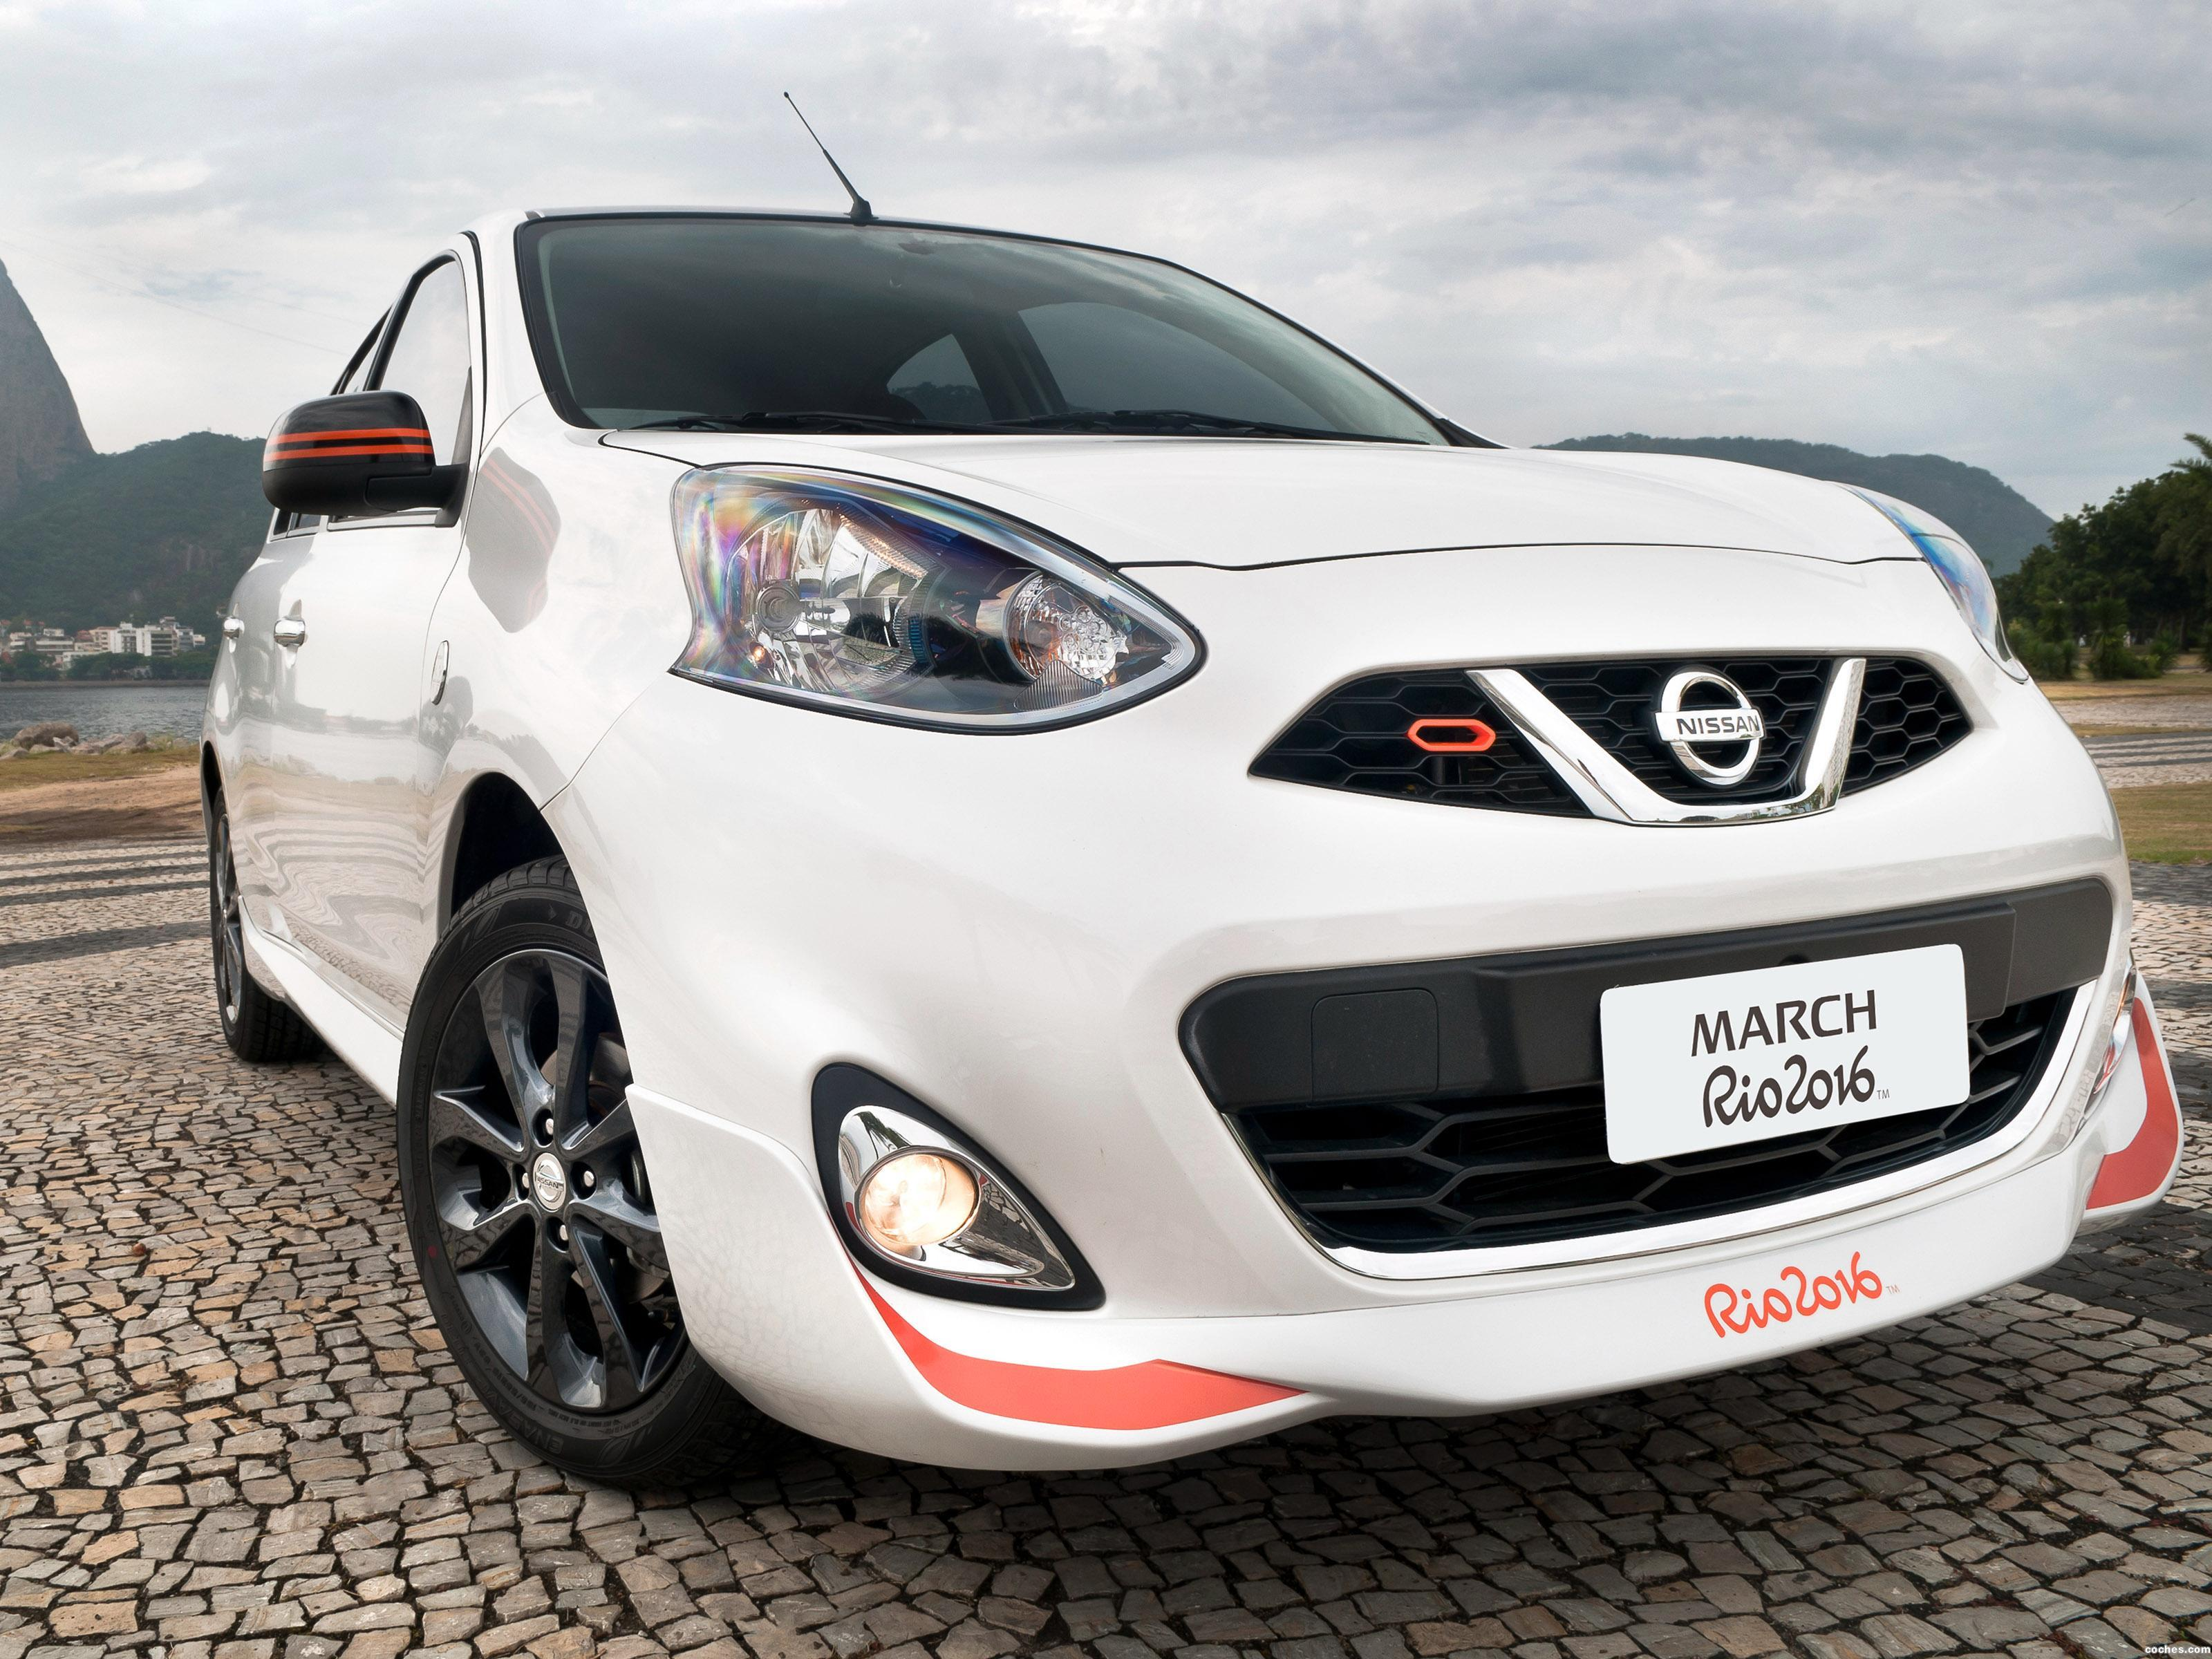 Foto 0 de Nissan March Rio 2016